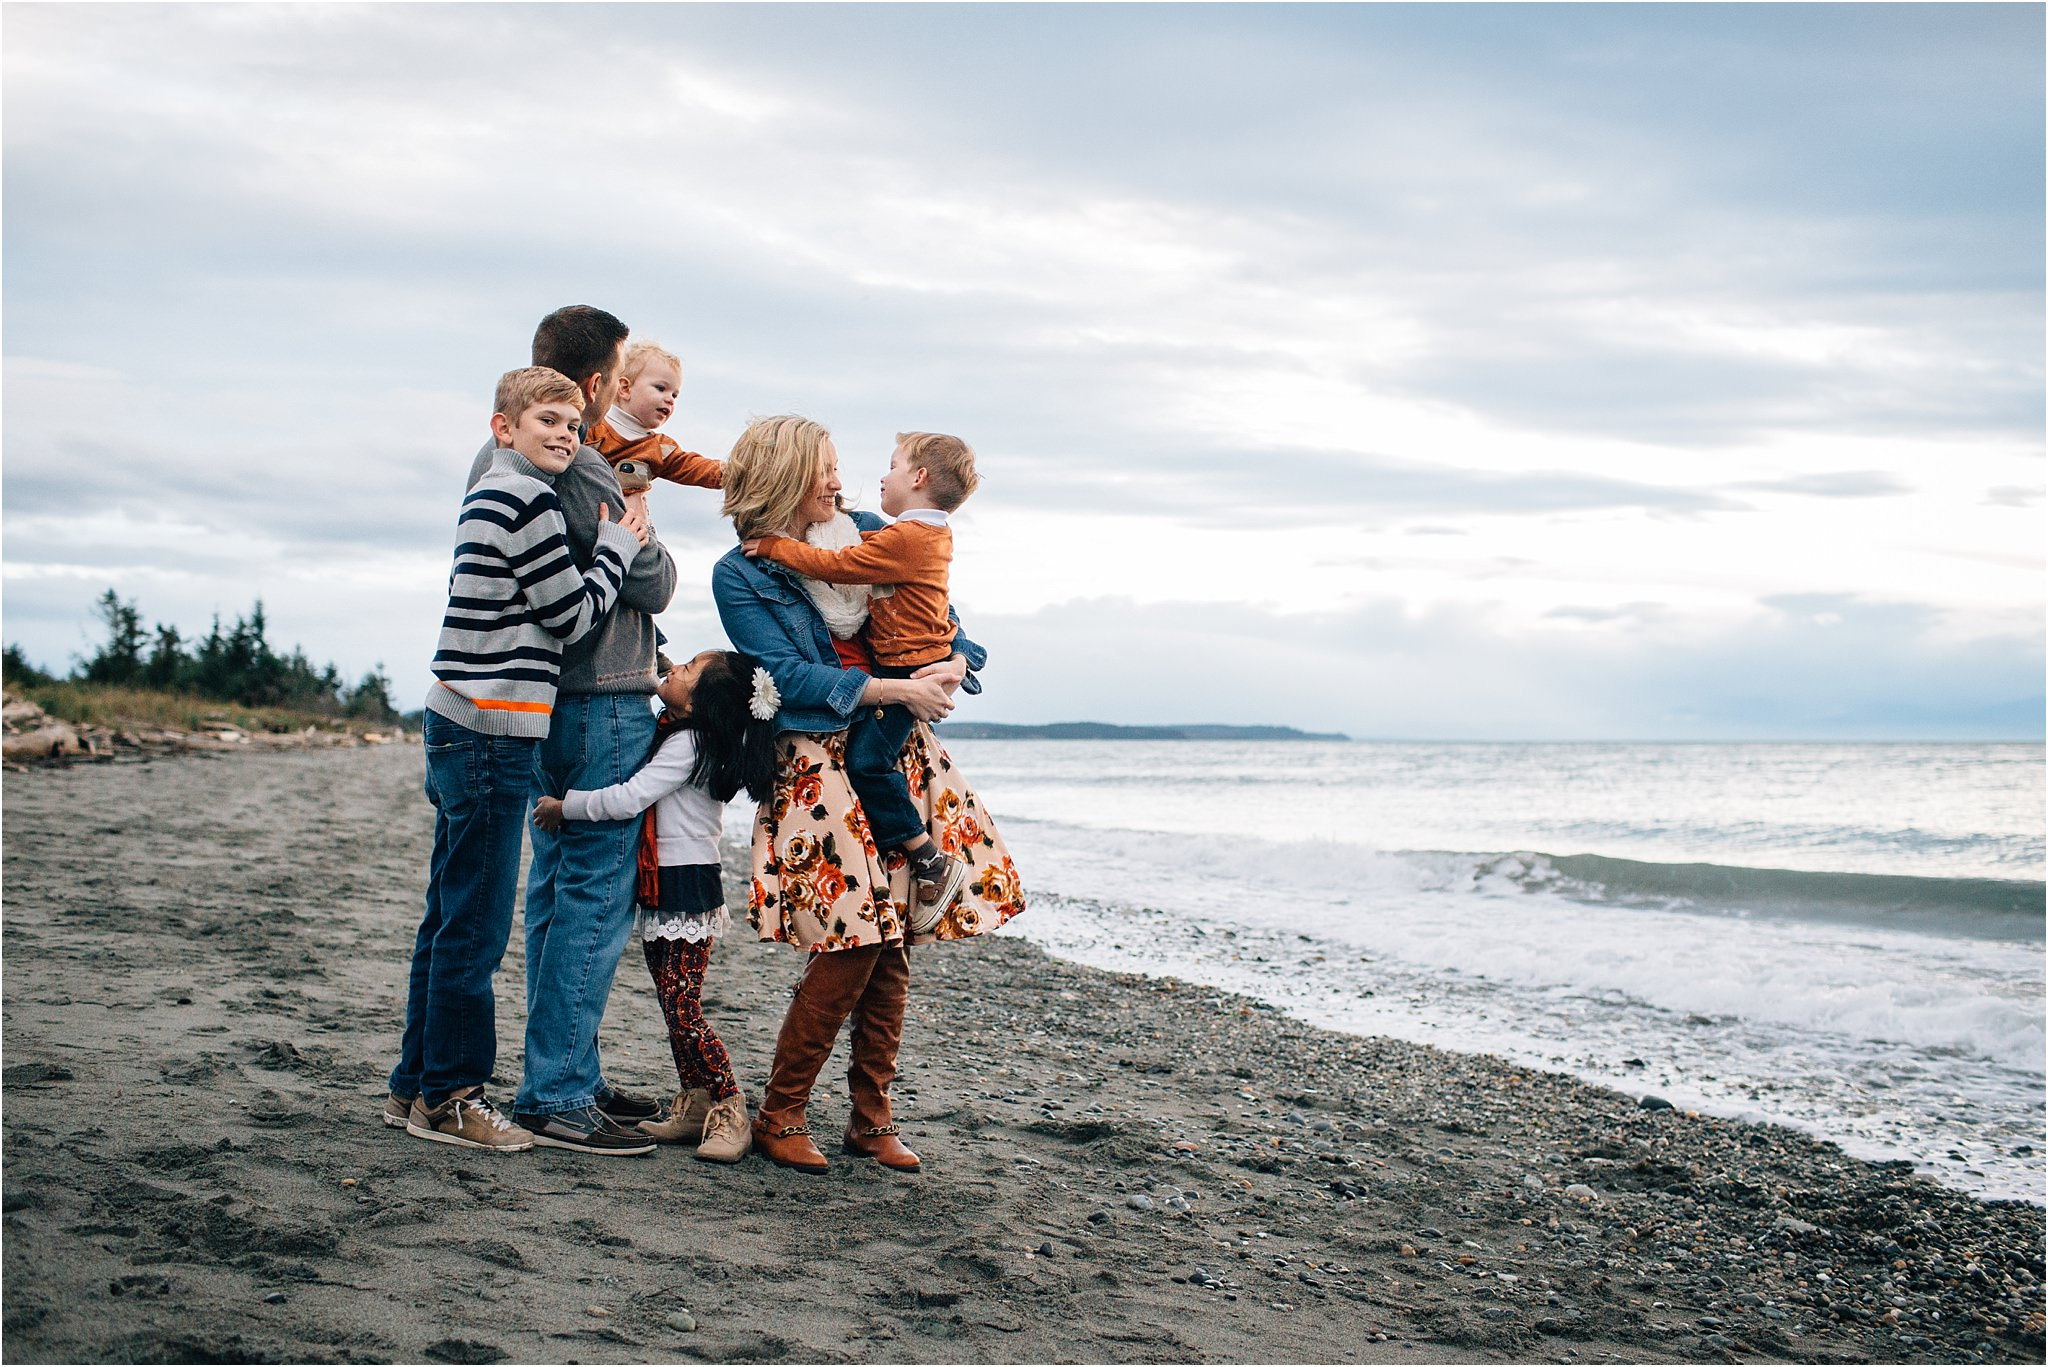 Whidbey-Island-Family-Photographer-Kara-Chappell-Photography_0053.jpg